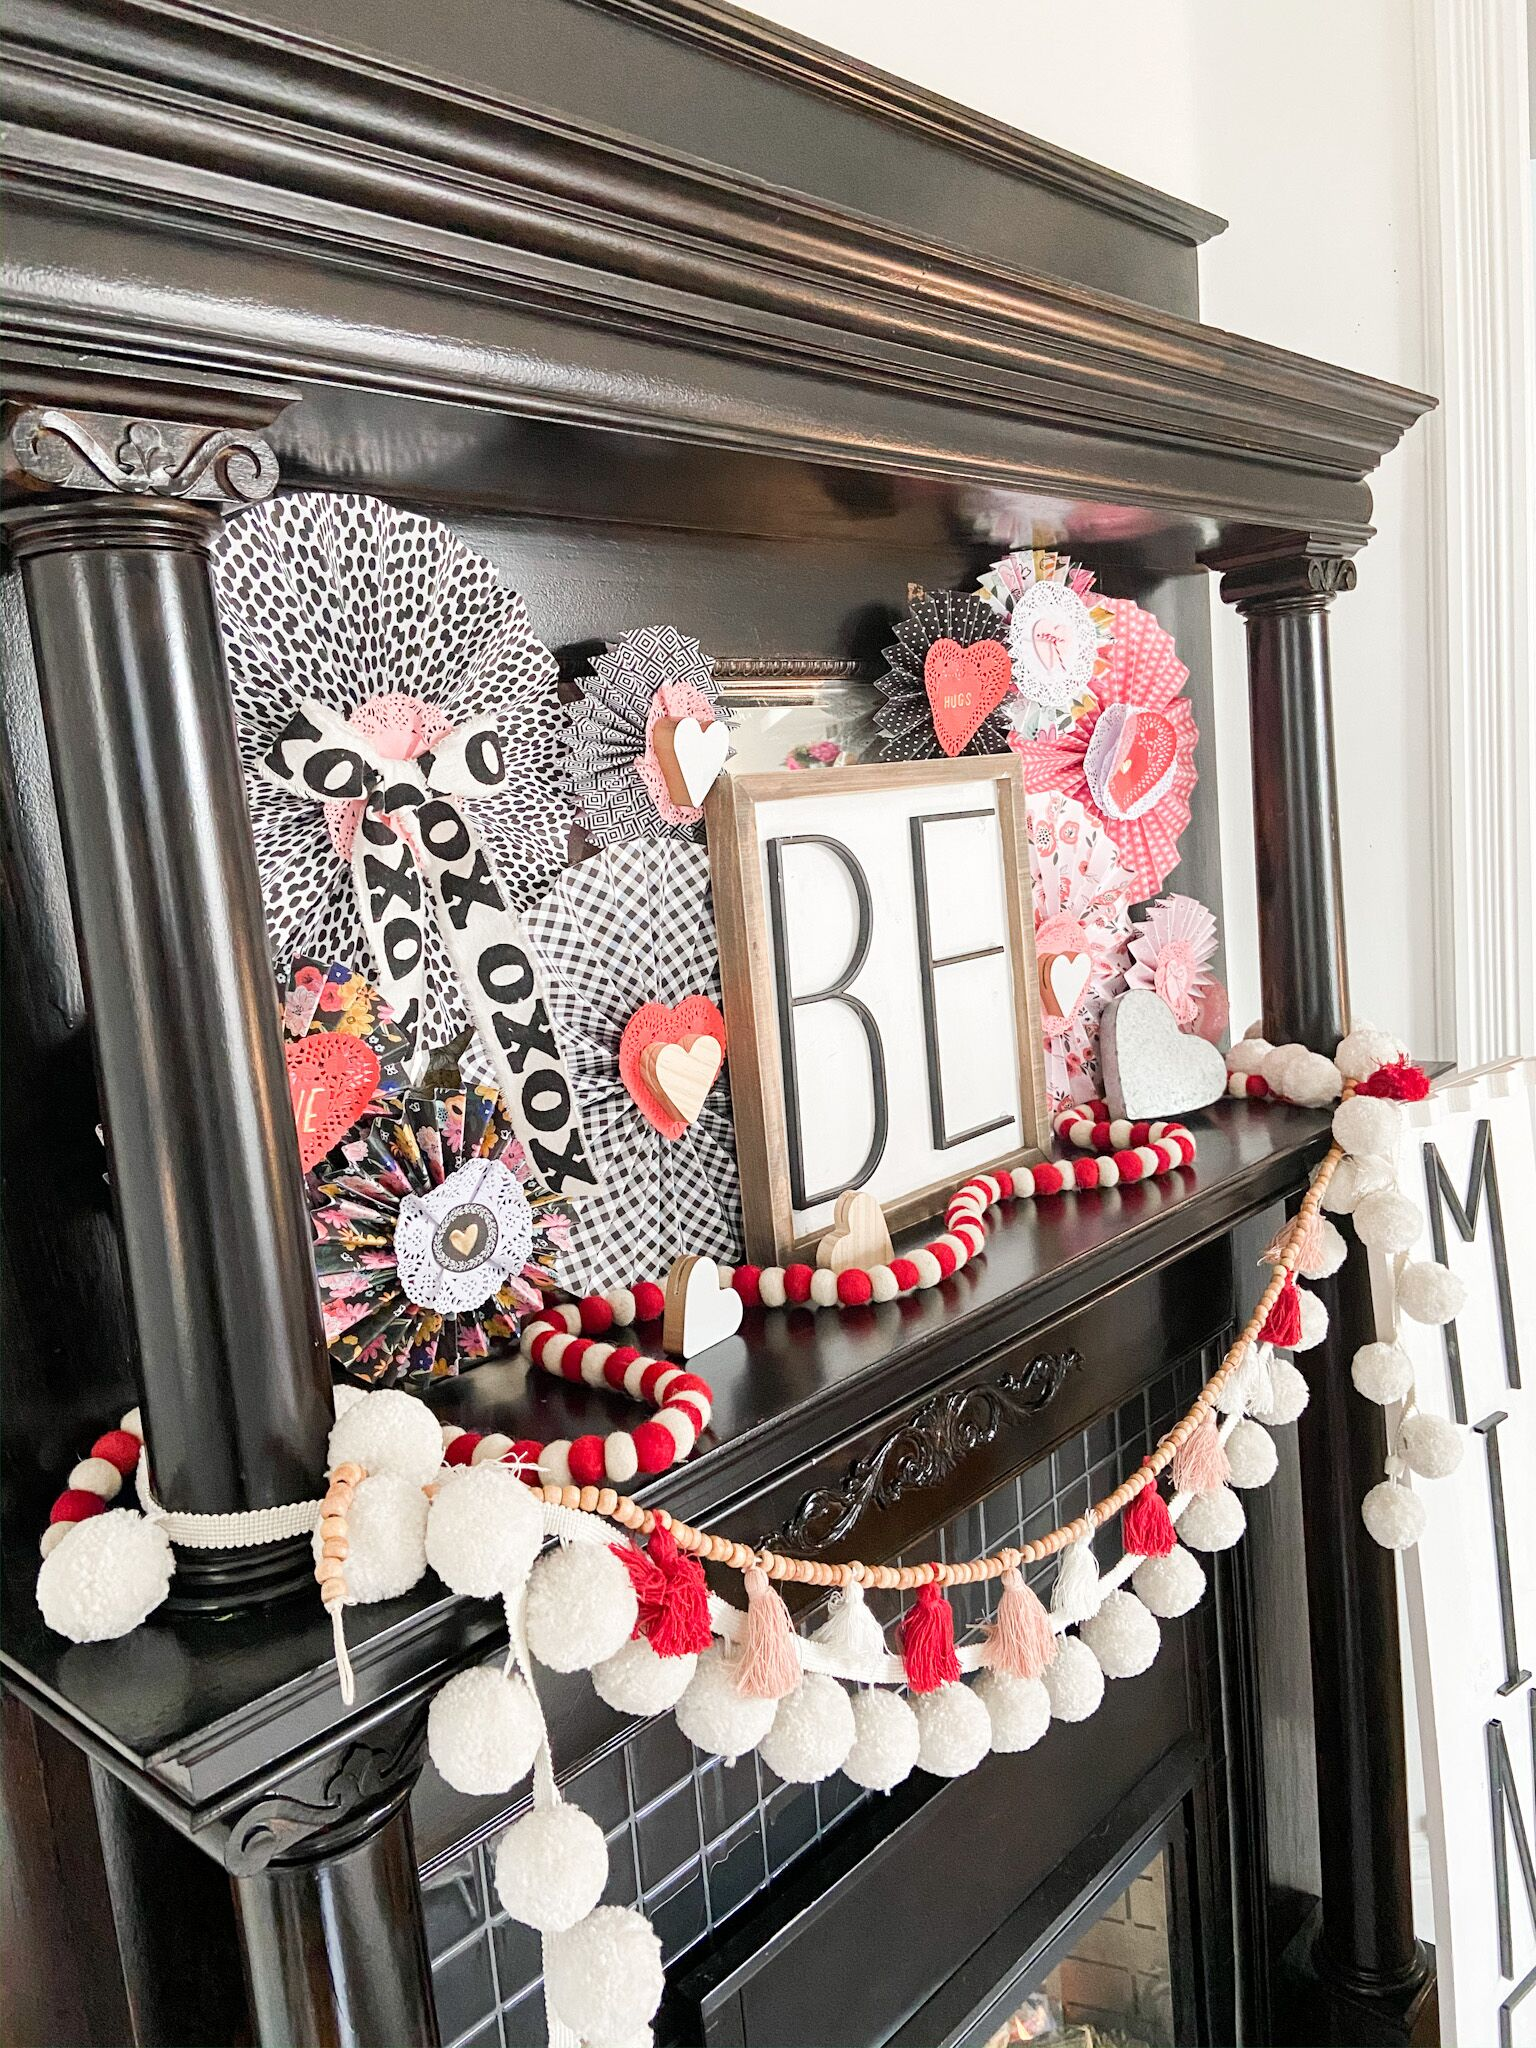 Valentine Be Mine mantel with handmade paper medallions, garlands and DIY wood signs.